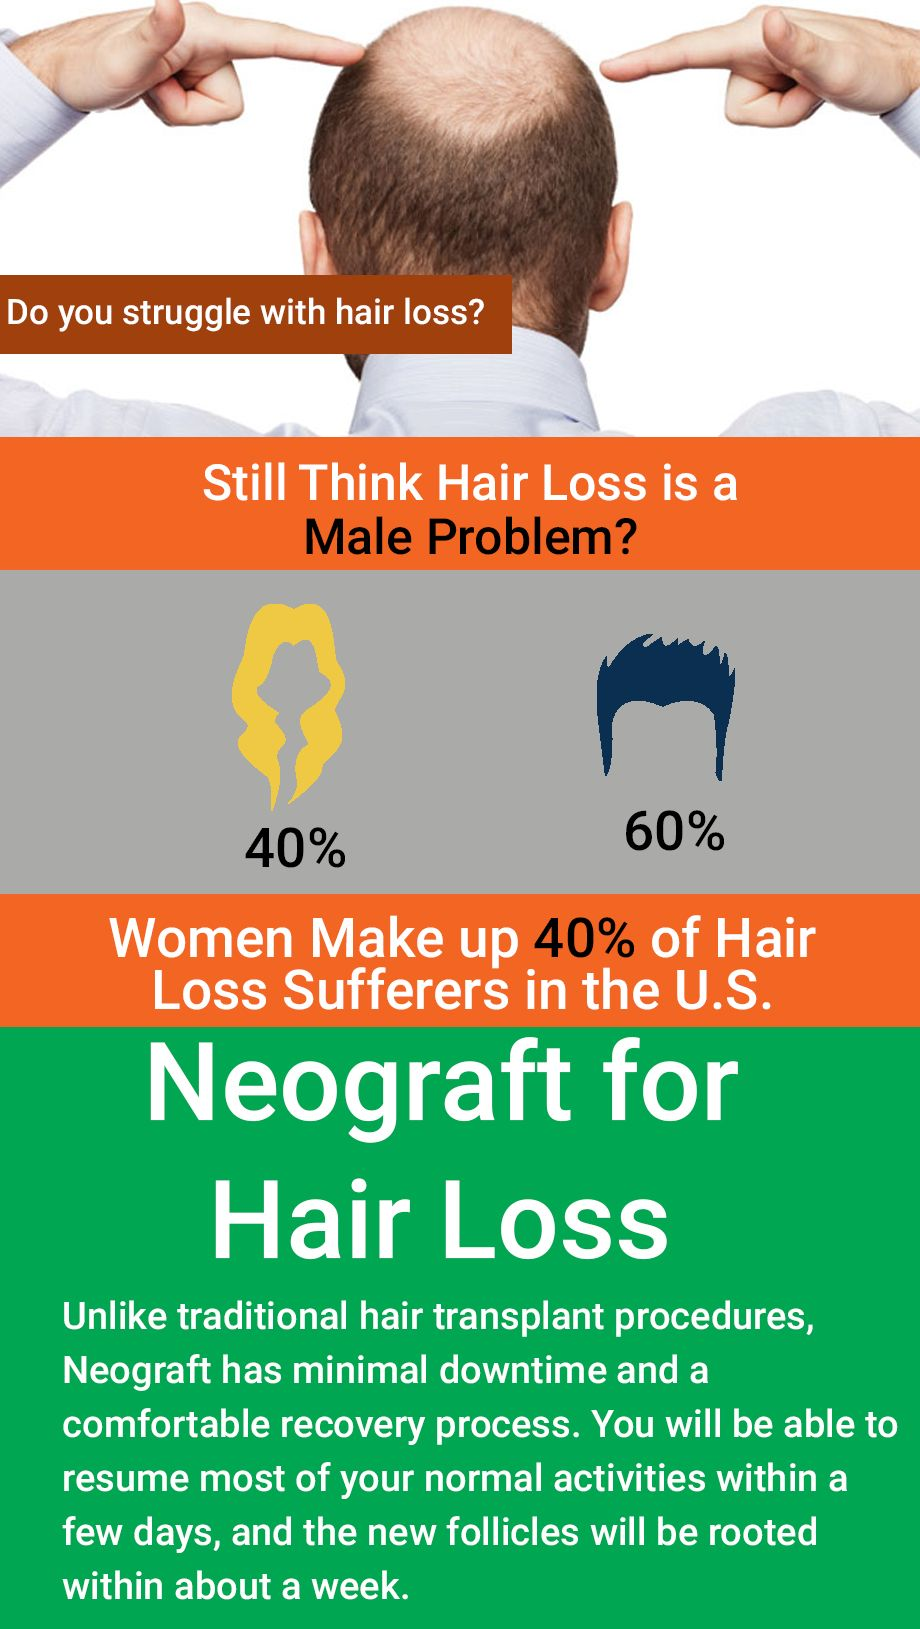 Get it Back! Hairloss does not have to be a problem for